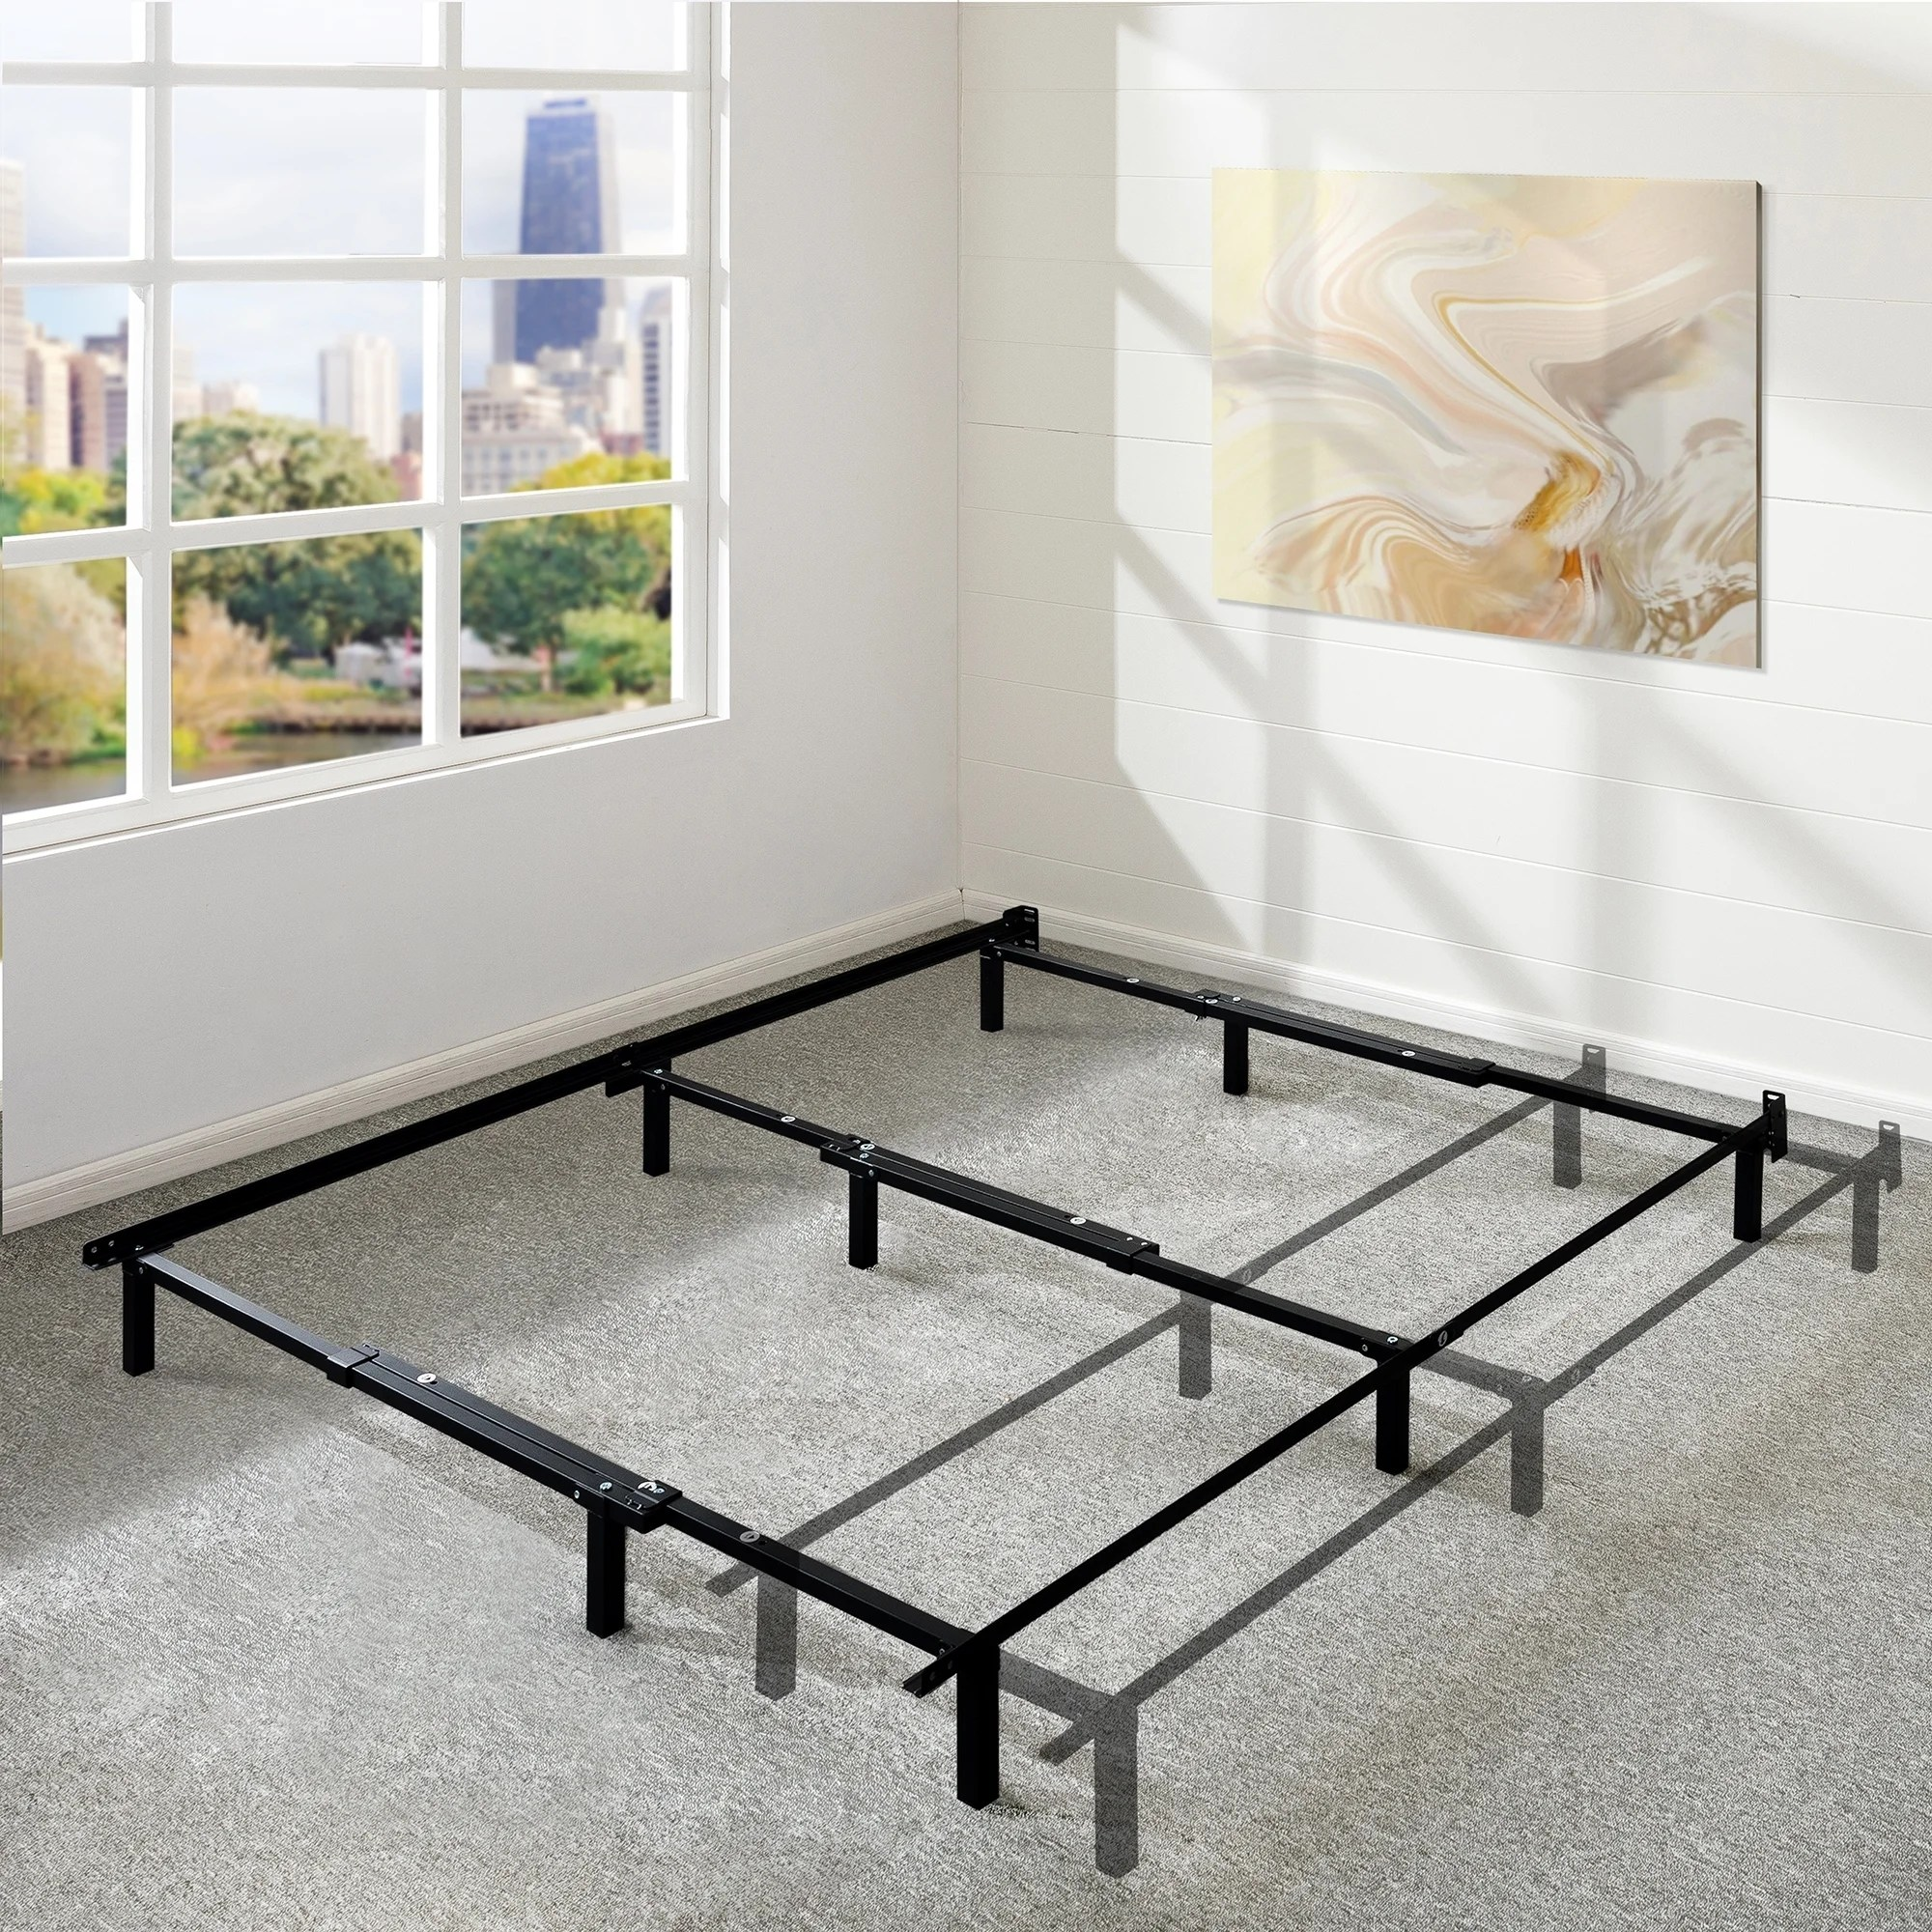 adjustable 7 inch metal platform bed frame compatible with twin full and queen size crown comfort